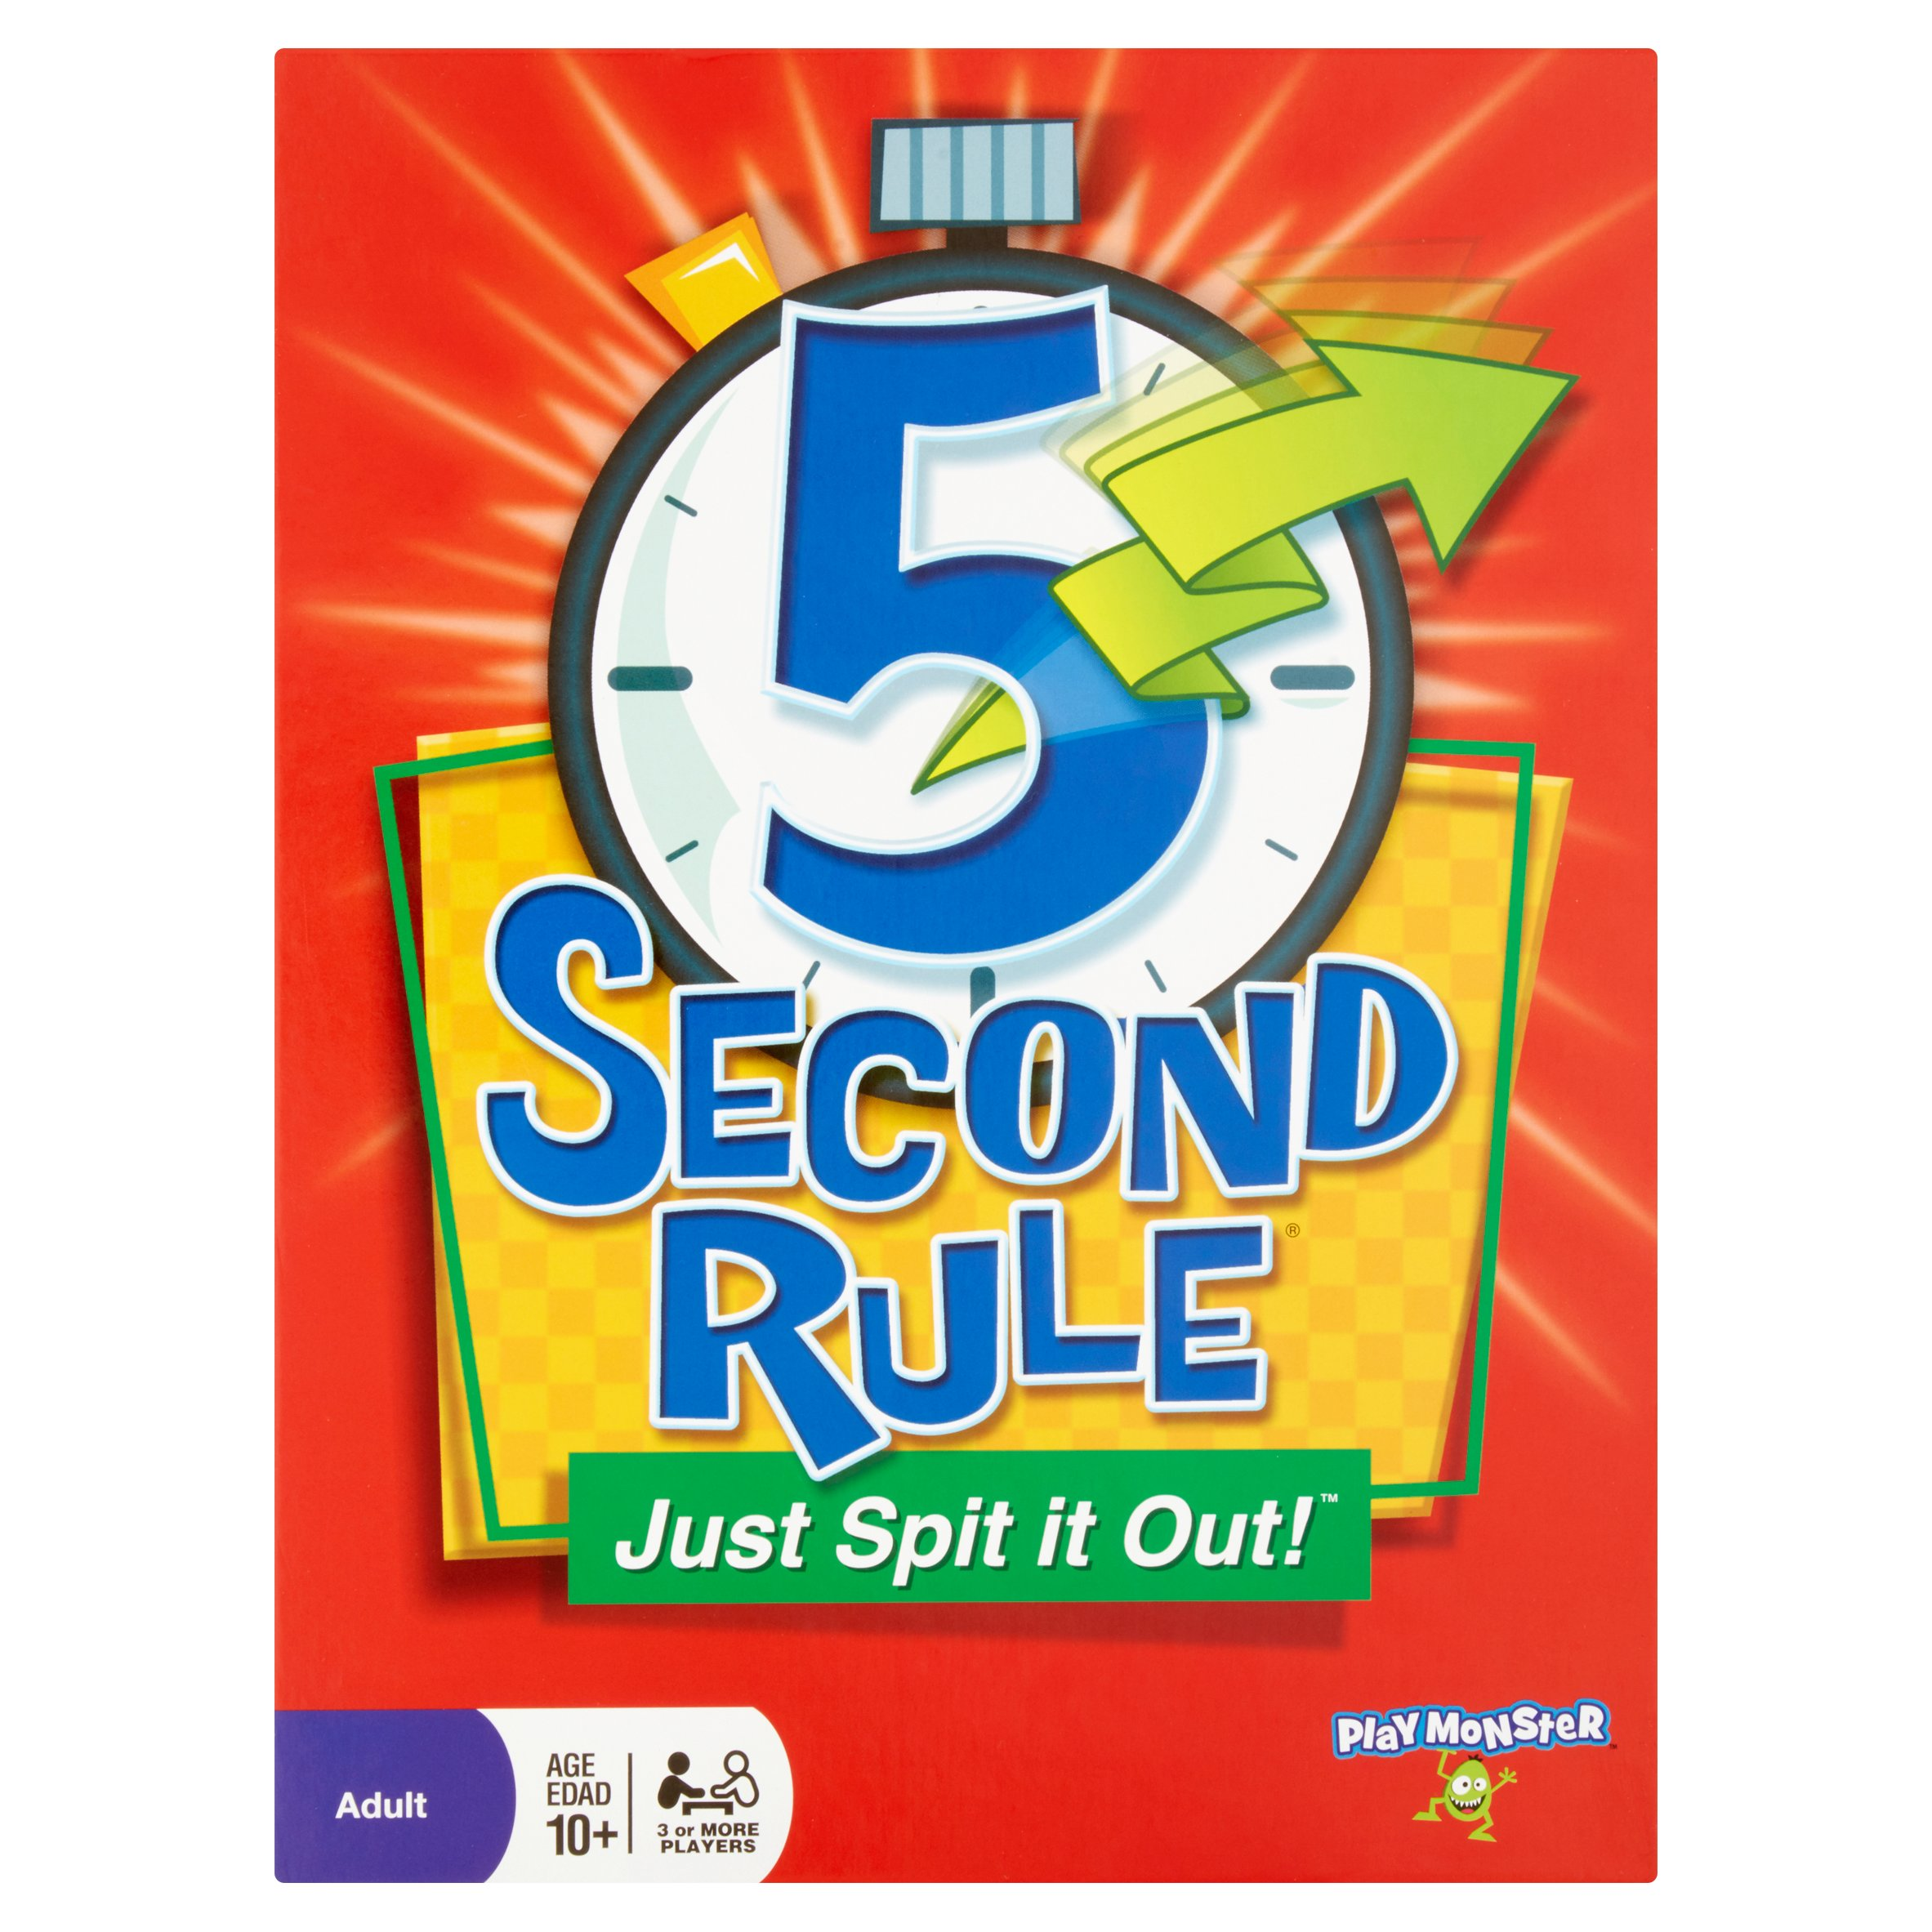 PATCH 5 Second Rule Board Game by PlayMonster LLC